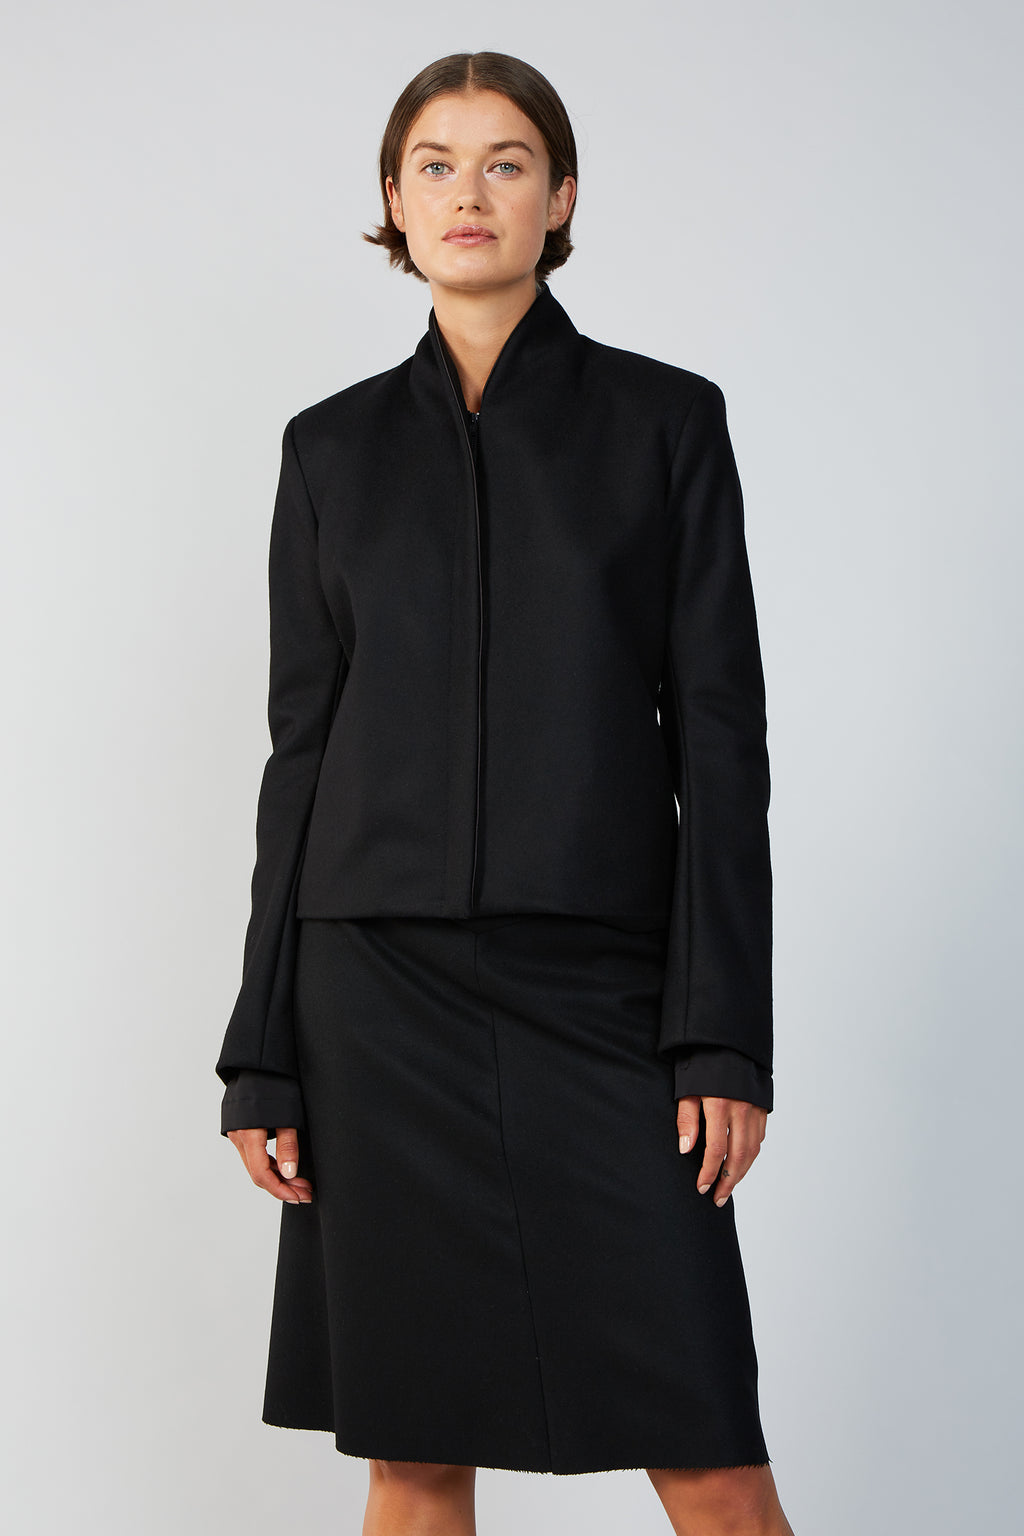 ZAMBESI HUNTRESS JACKET